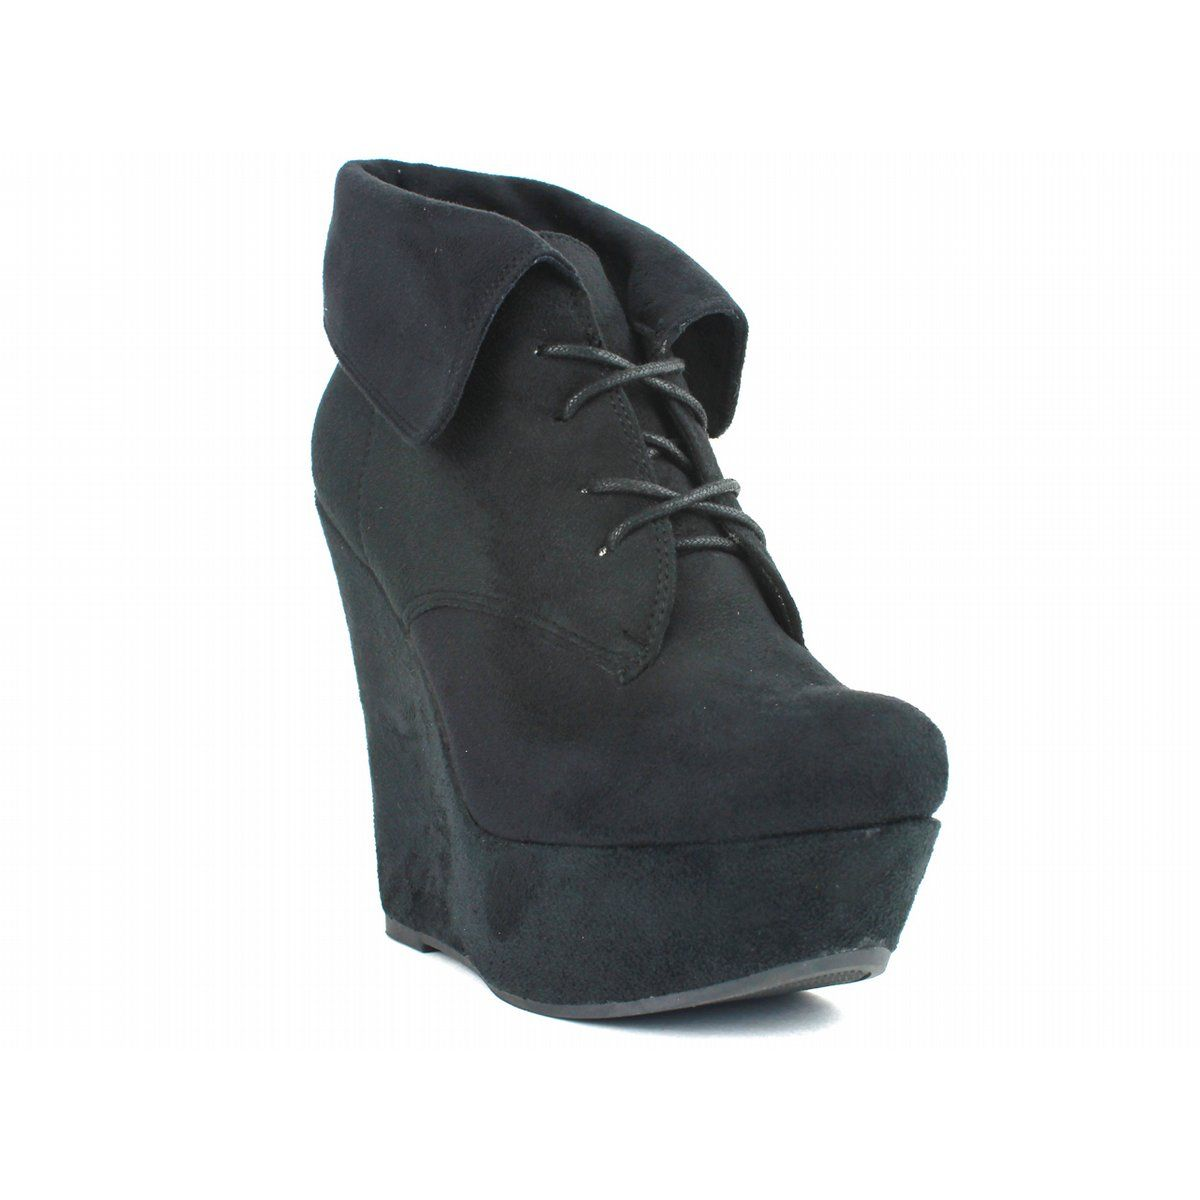 From DB Shoes or Sheik Size 9 works for me!! or http://www.247fashionstore.com/product-p/carrie-12-bk-138.htm